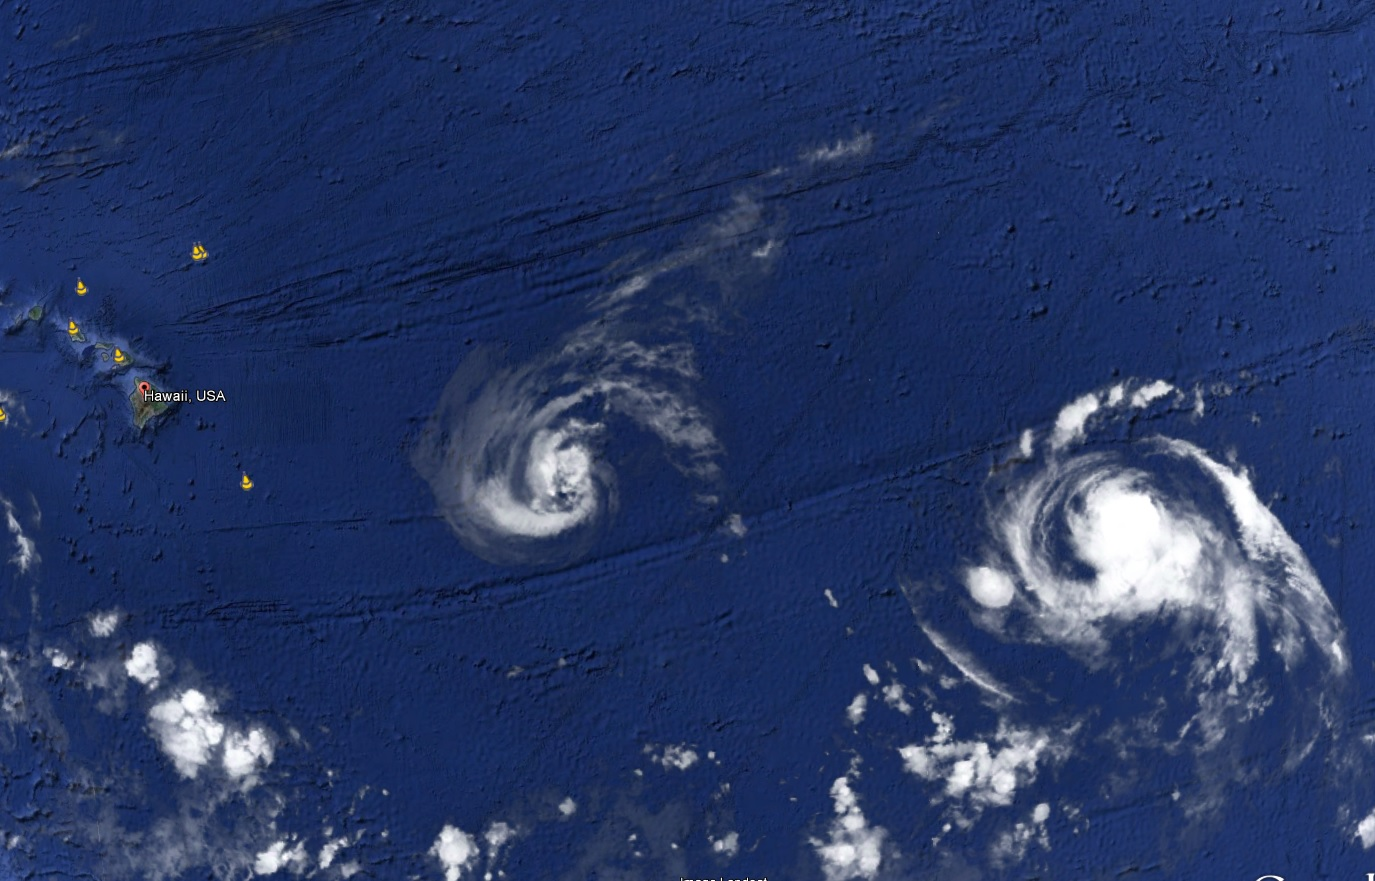 Double Whammy Hurricanes Julio And Iselle Set To Batter Hawaii